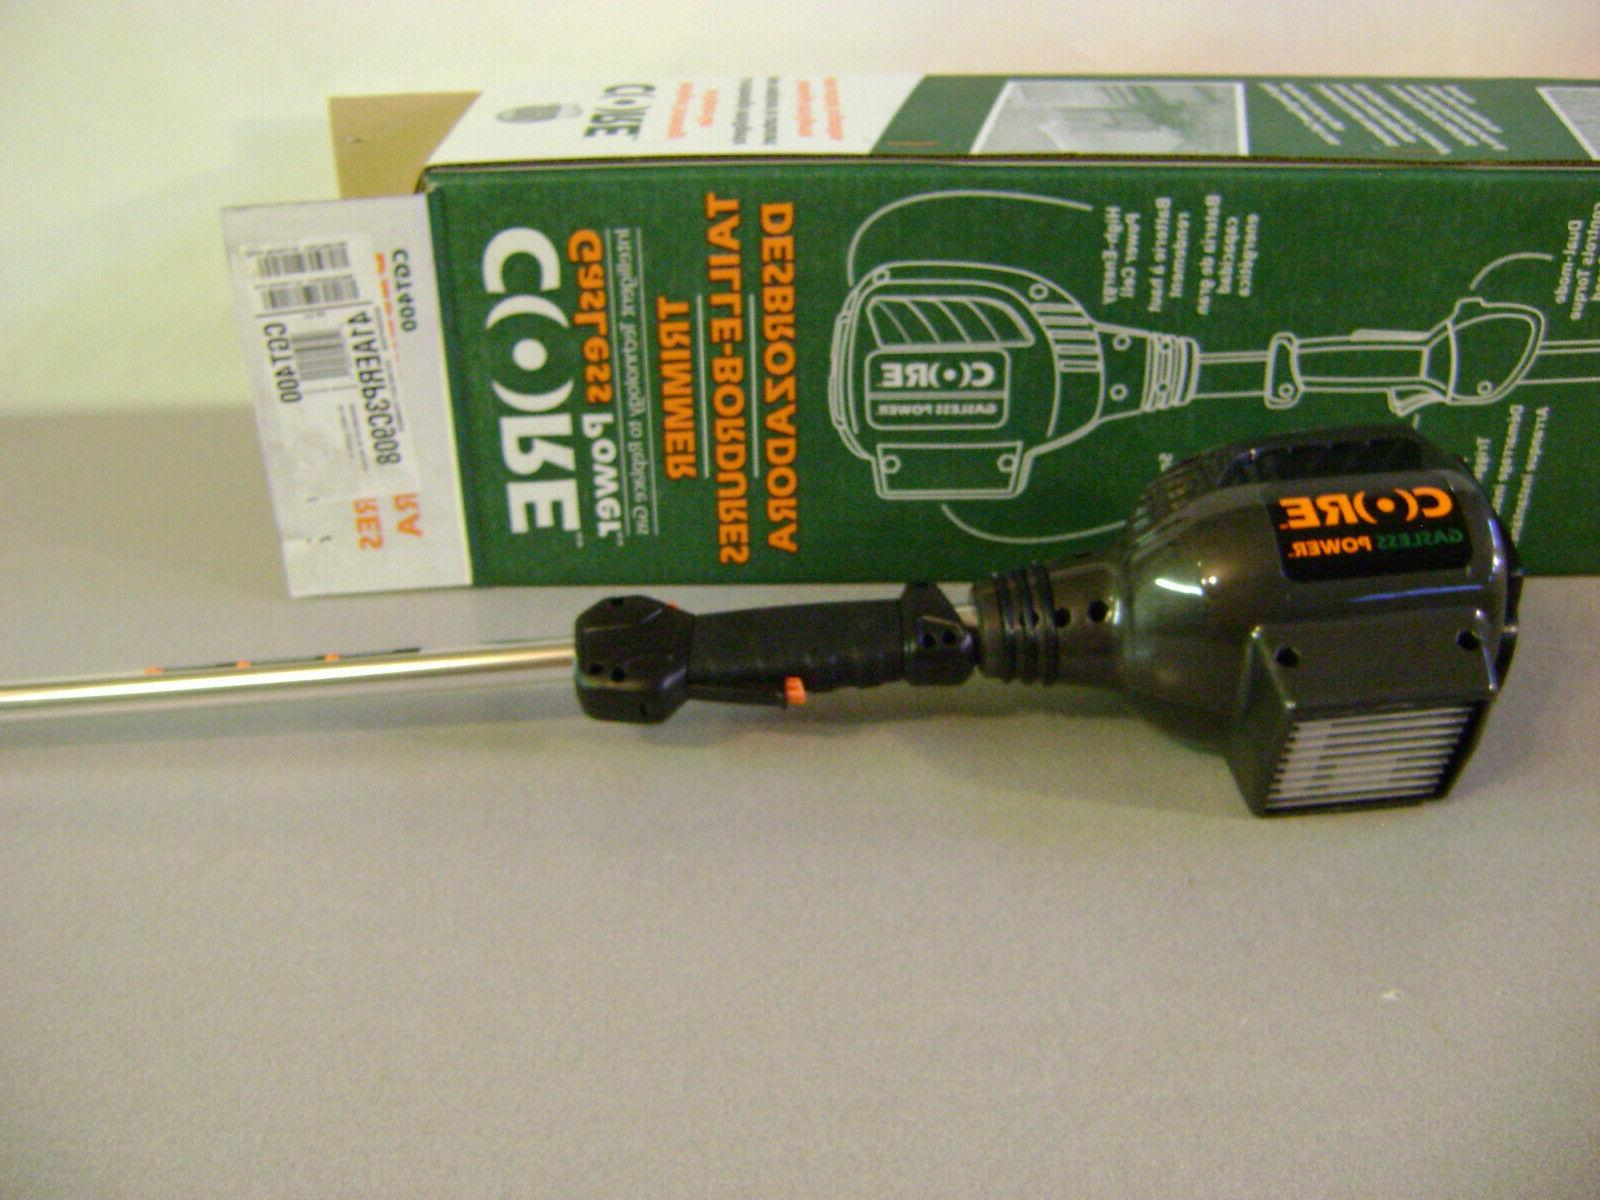 core cgt400 weed eater trimmer shroud body